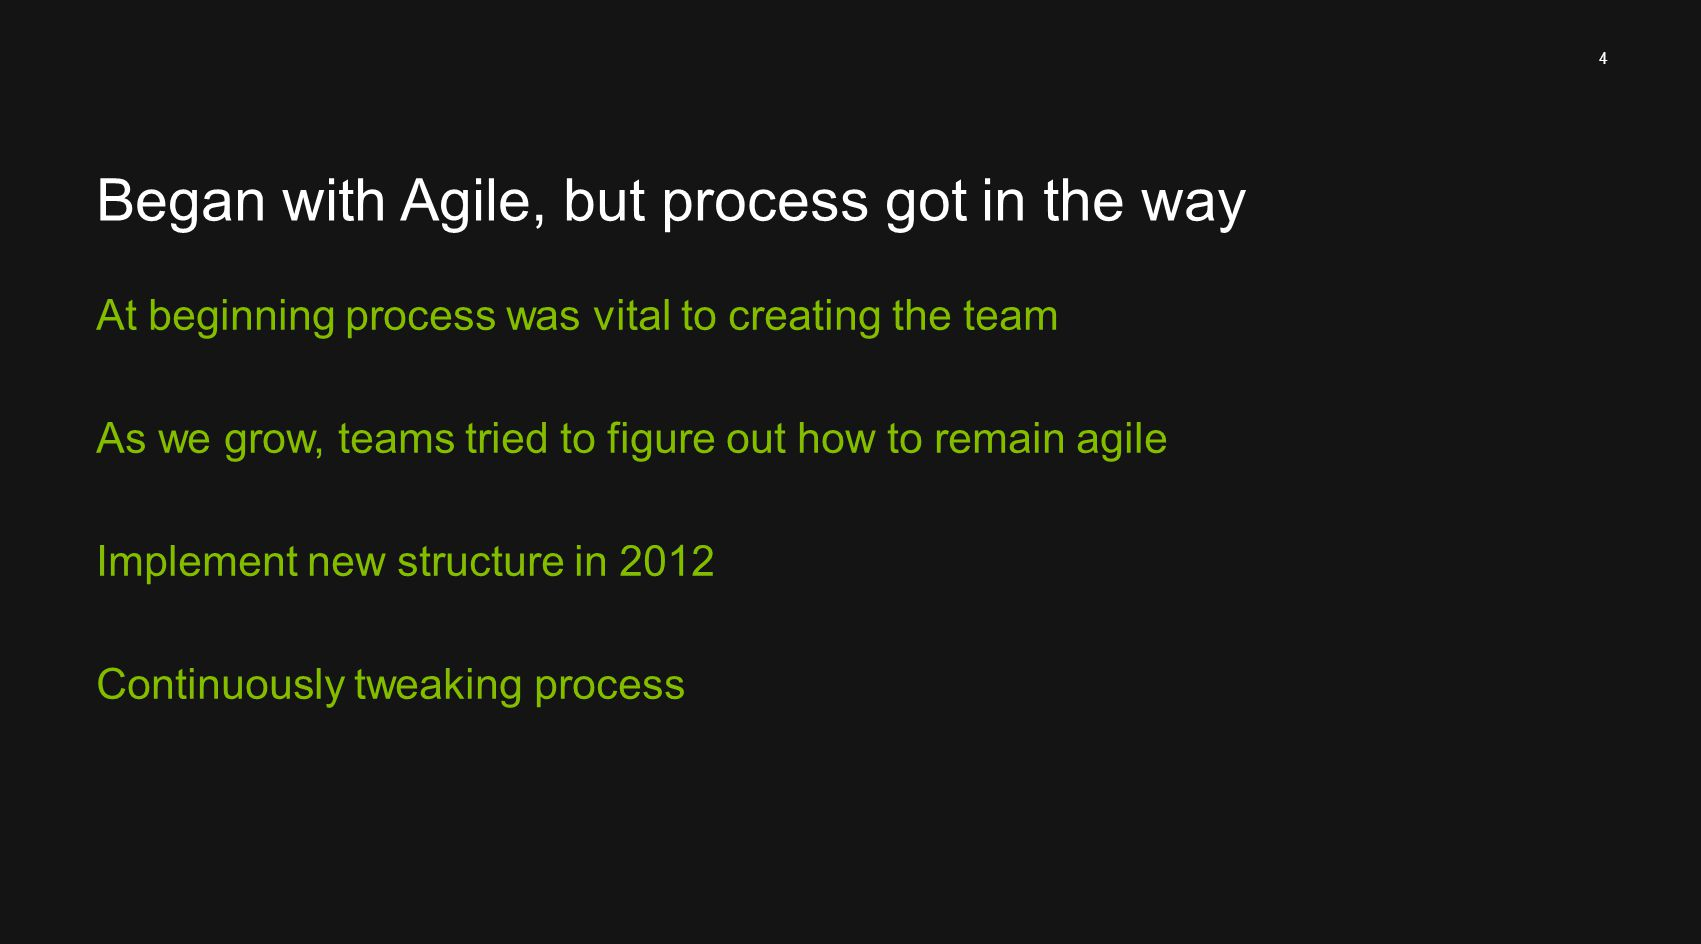 4 Began with Agile, but process got in the way At beginning process was vital to creating the team As we grow, teams tried to figure out how to remain